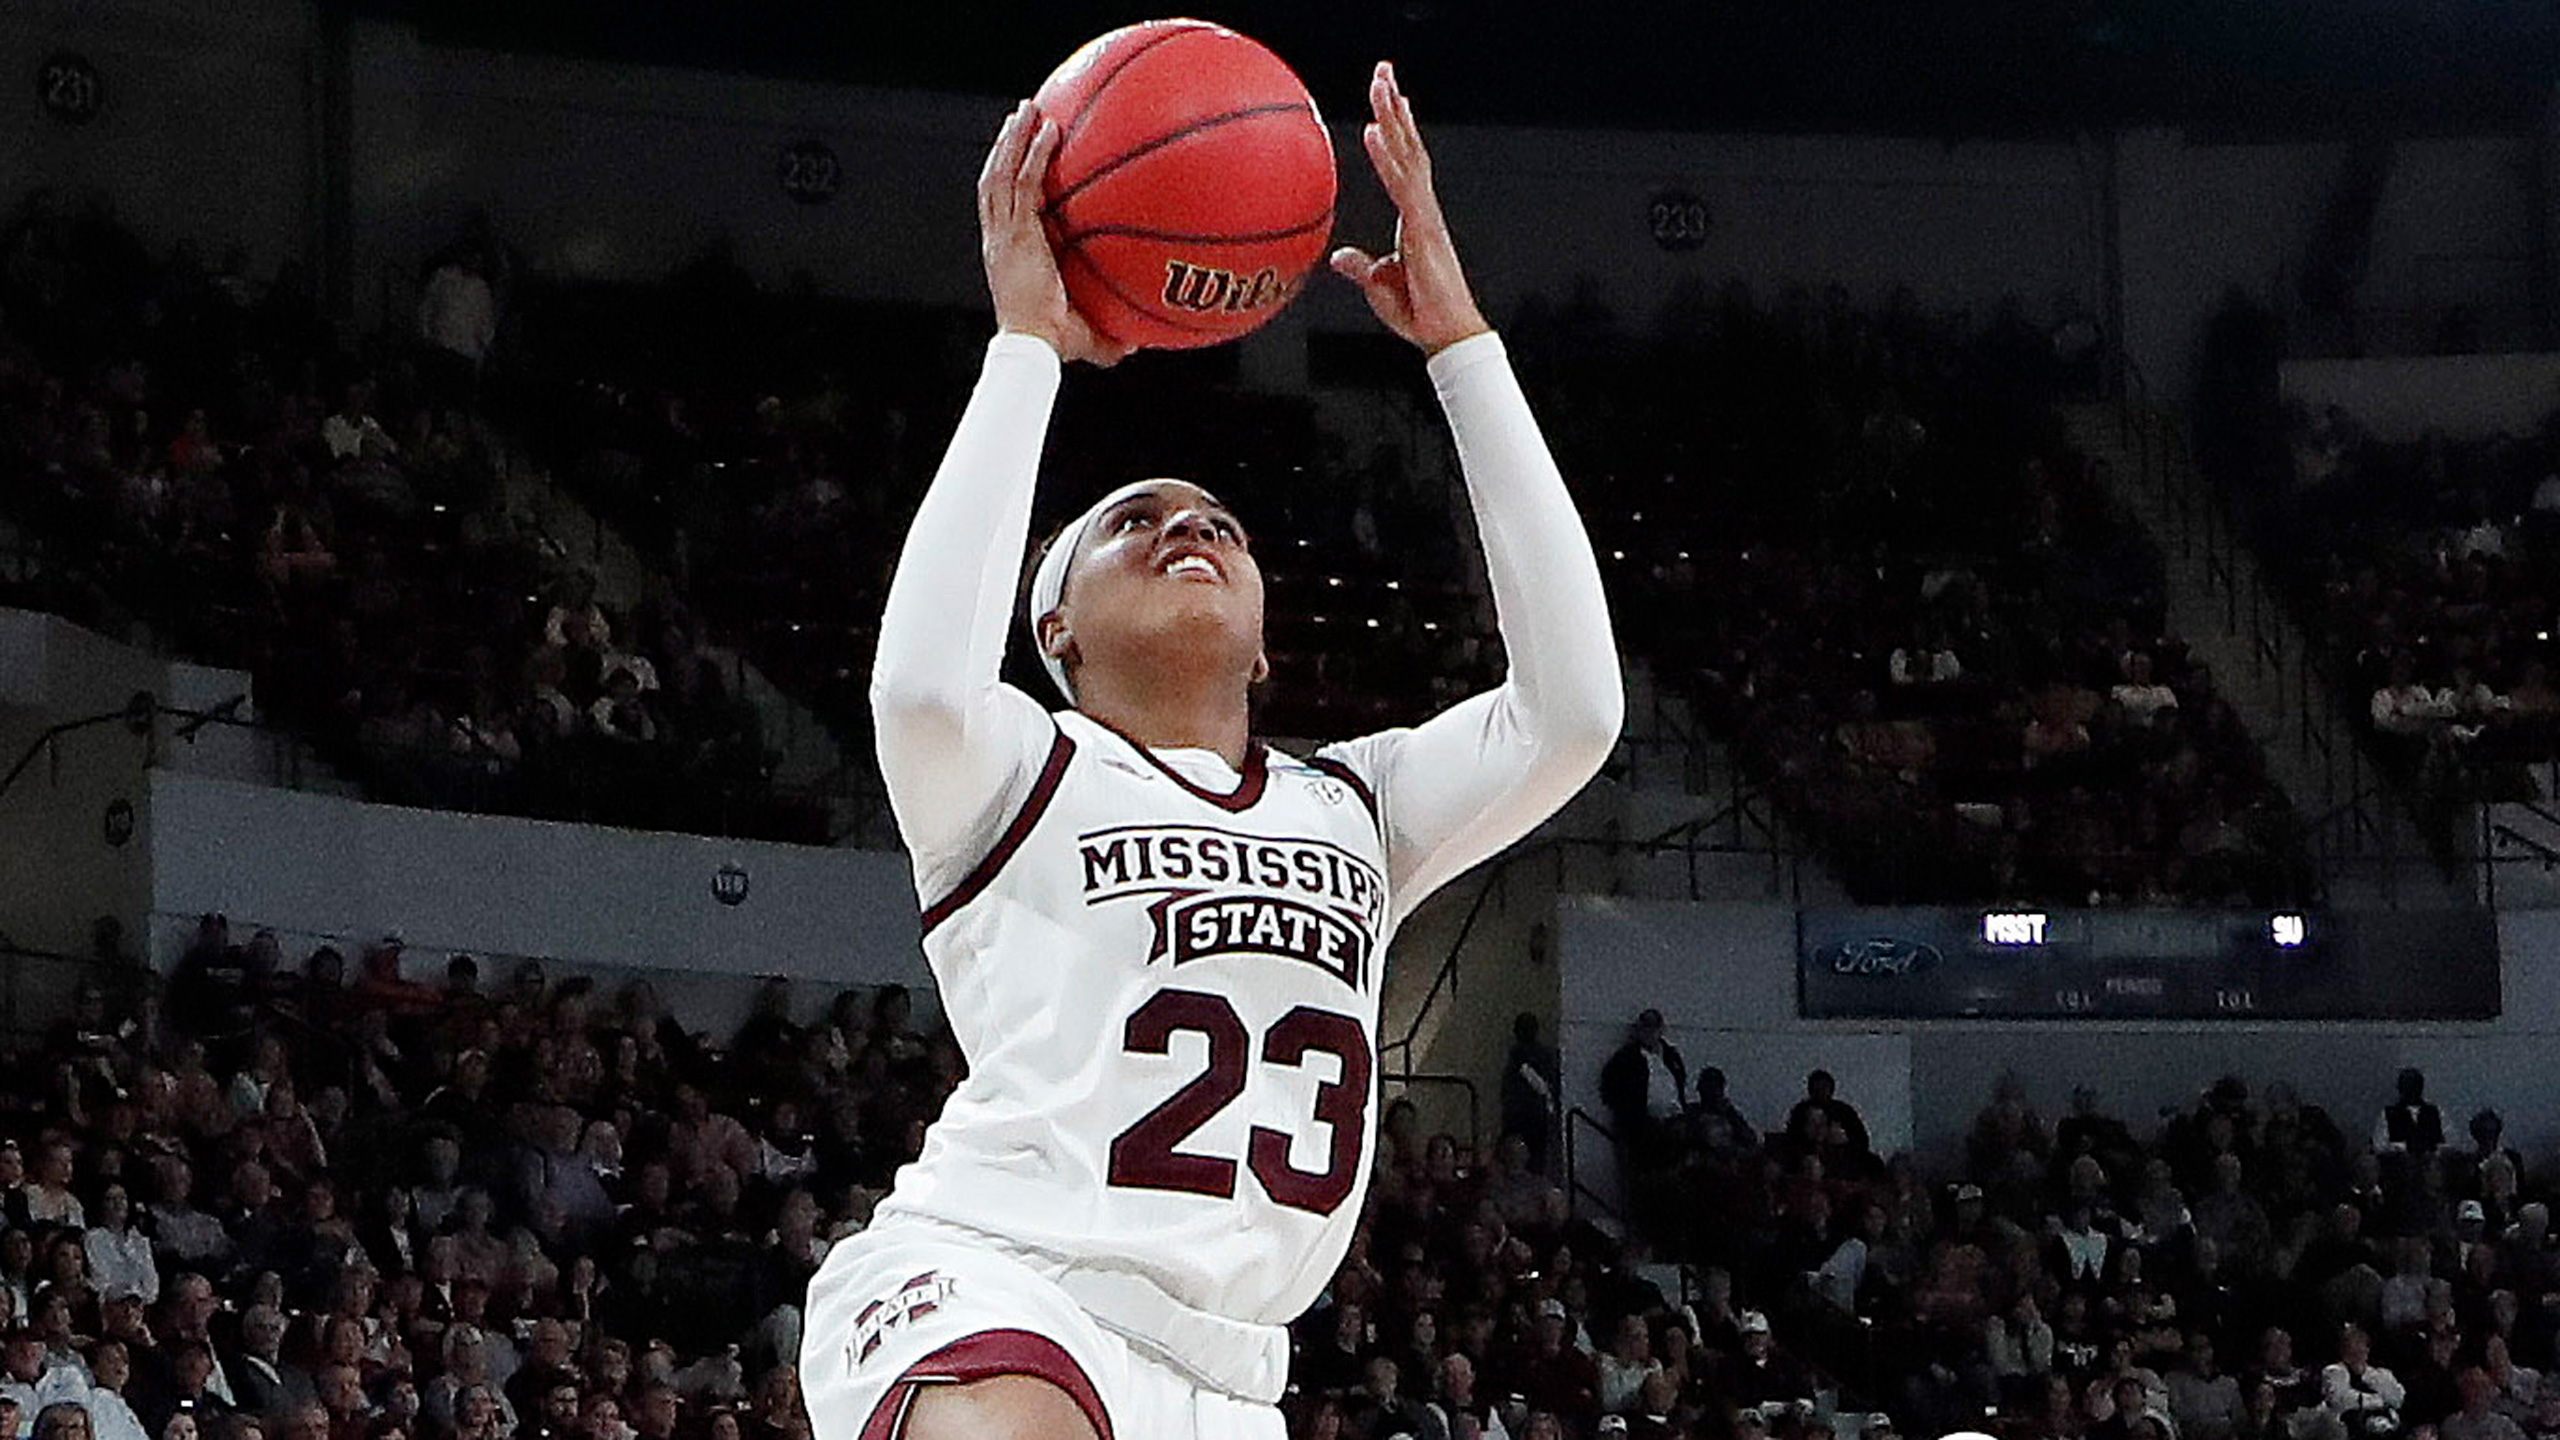 #9 Clemson vs. #1 Mississippi State (Second Round) (NCAA Women's Basketball Championship)